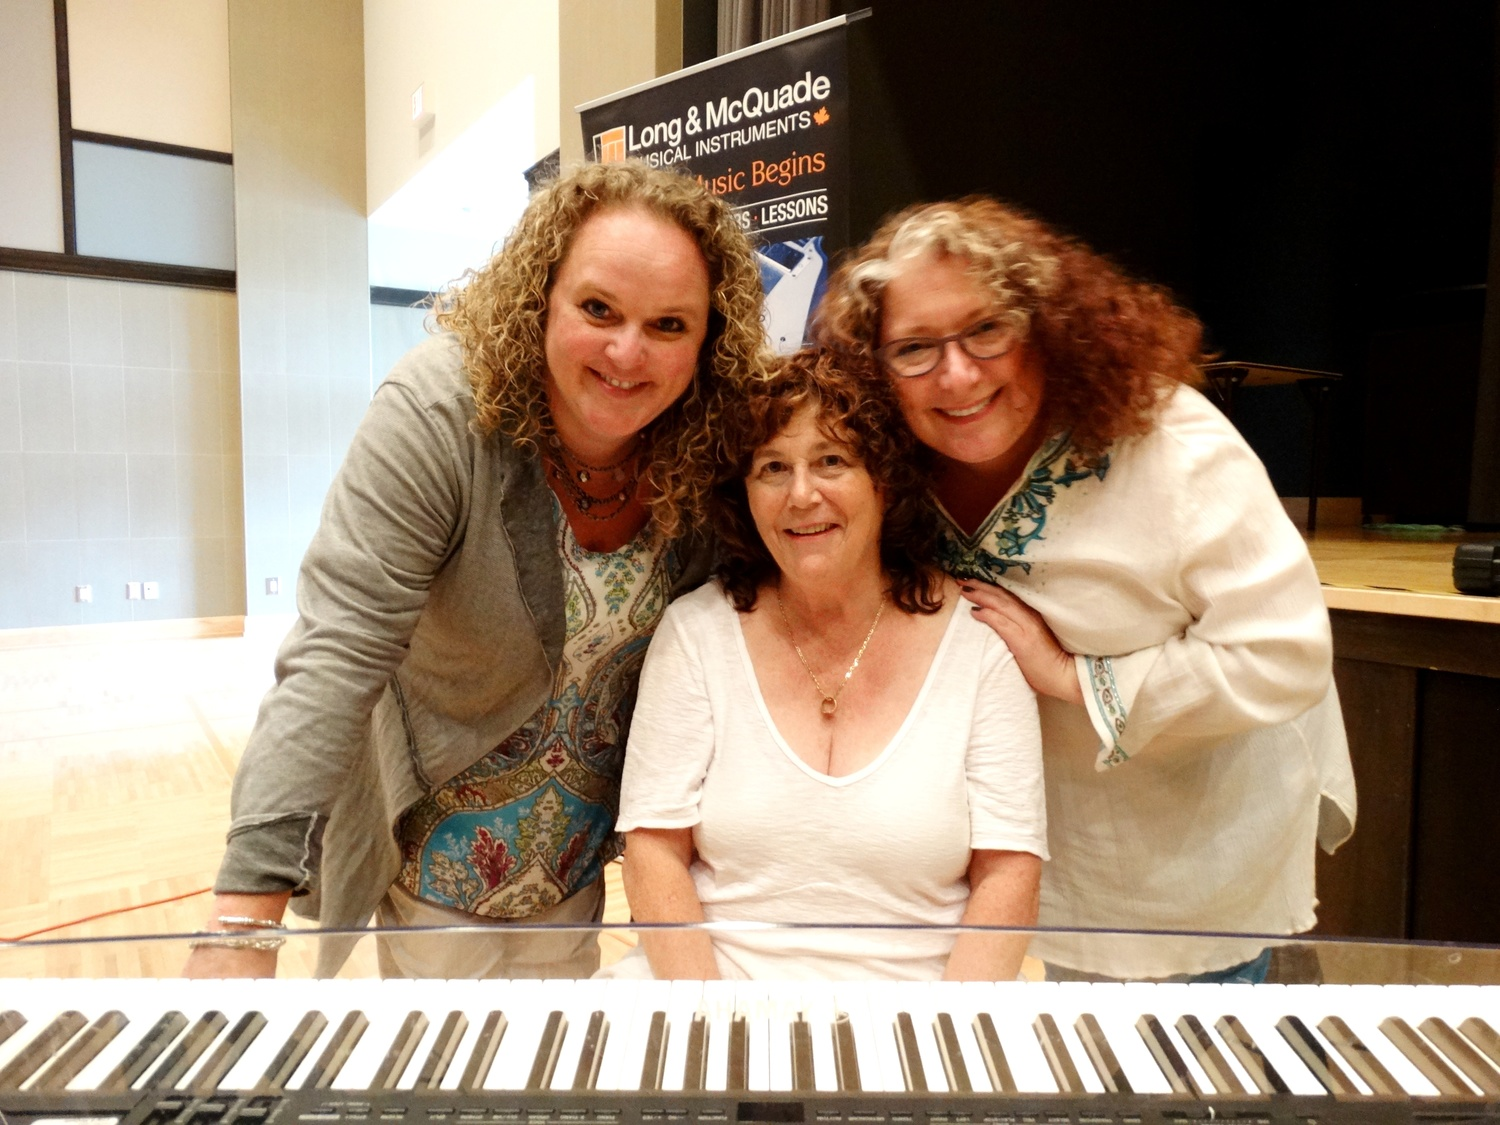 Vocal jazz workshop with Broadsway - July 25, 2015 Niagara-on-the-Lake Public Library: Heather Bambrick, Diane Leah & Julie Michels. Photo: Snapd